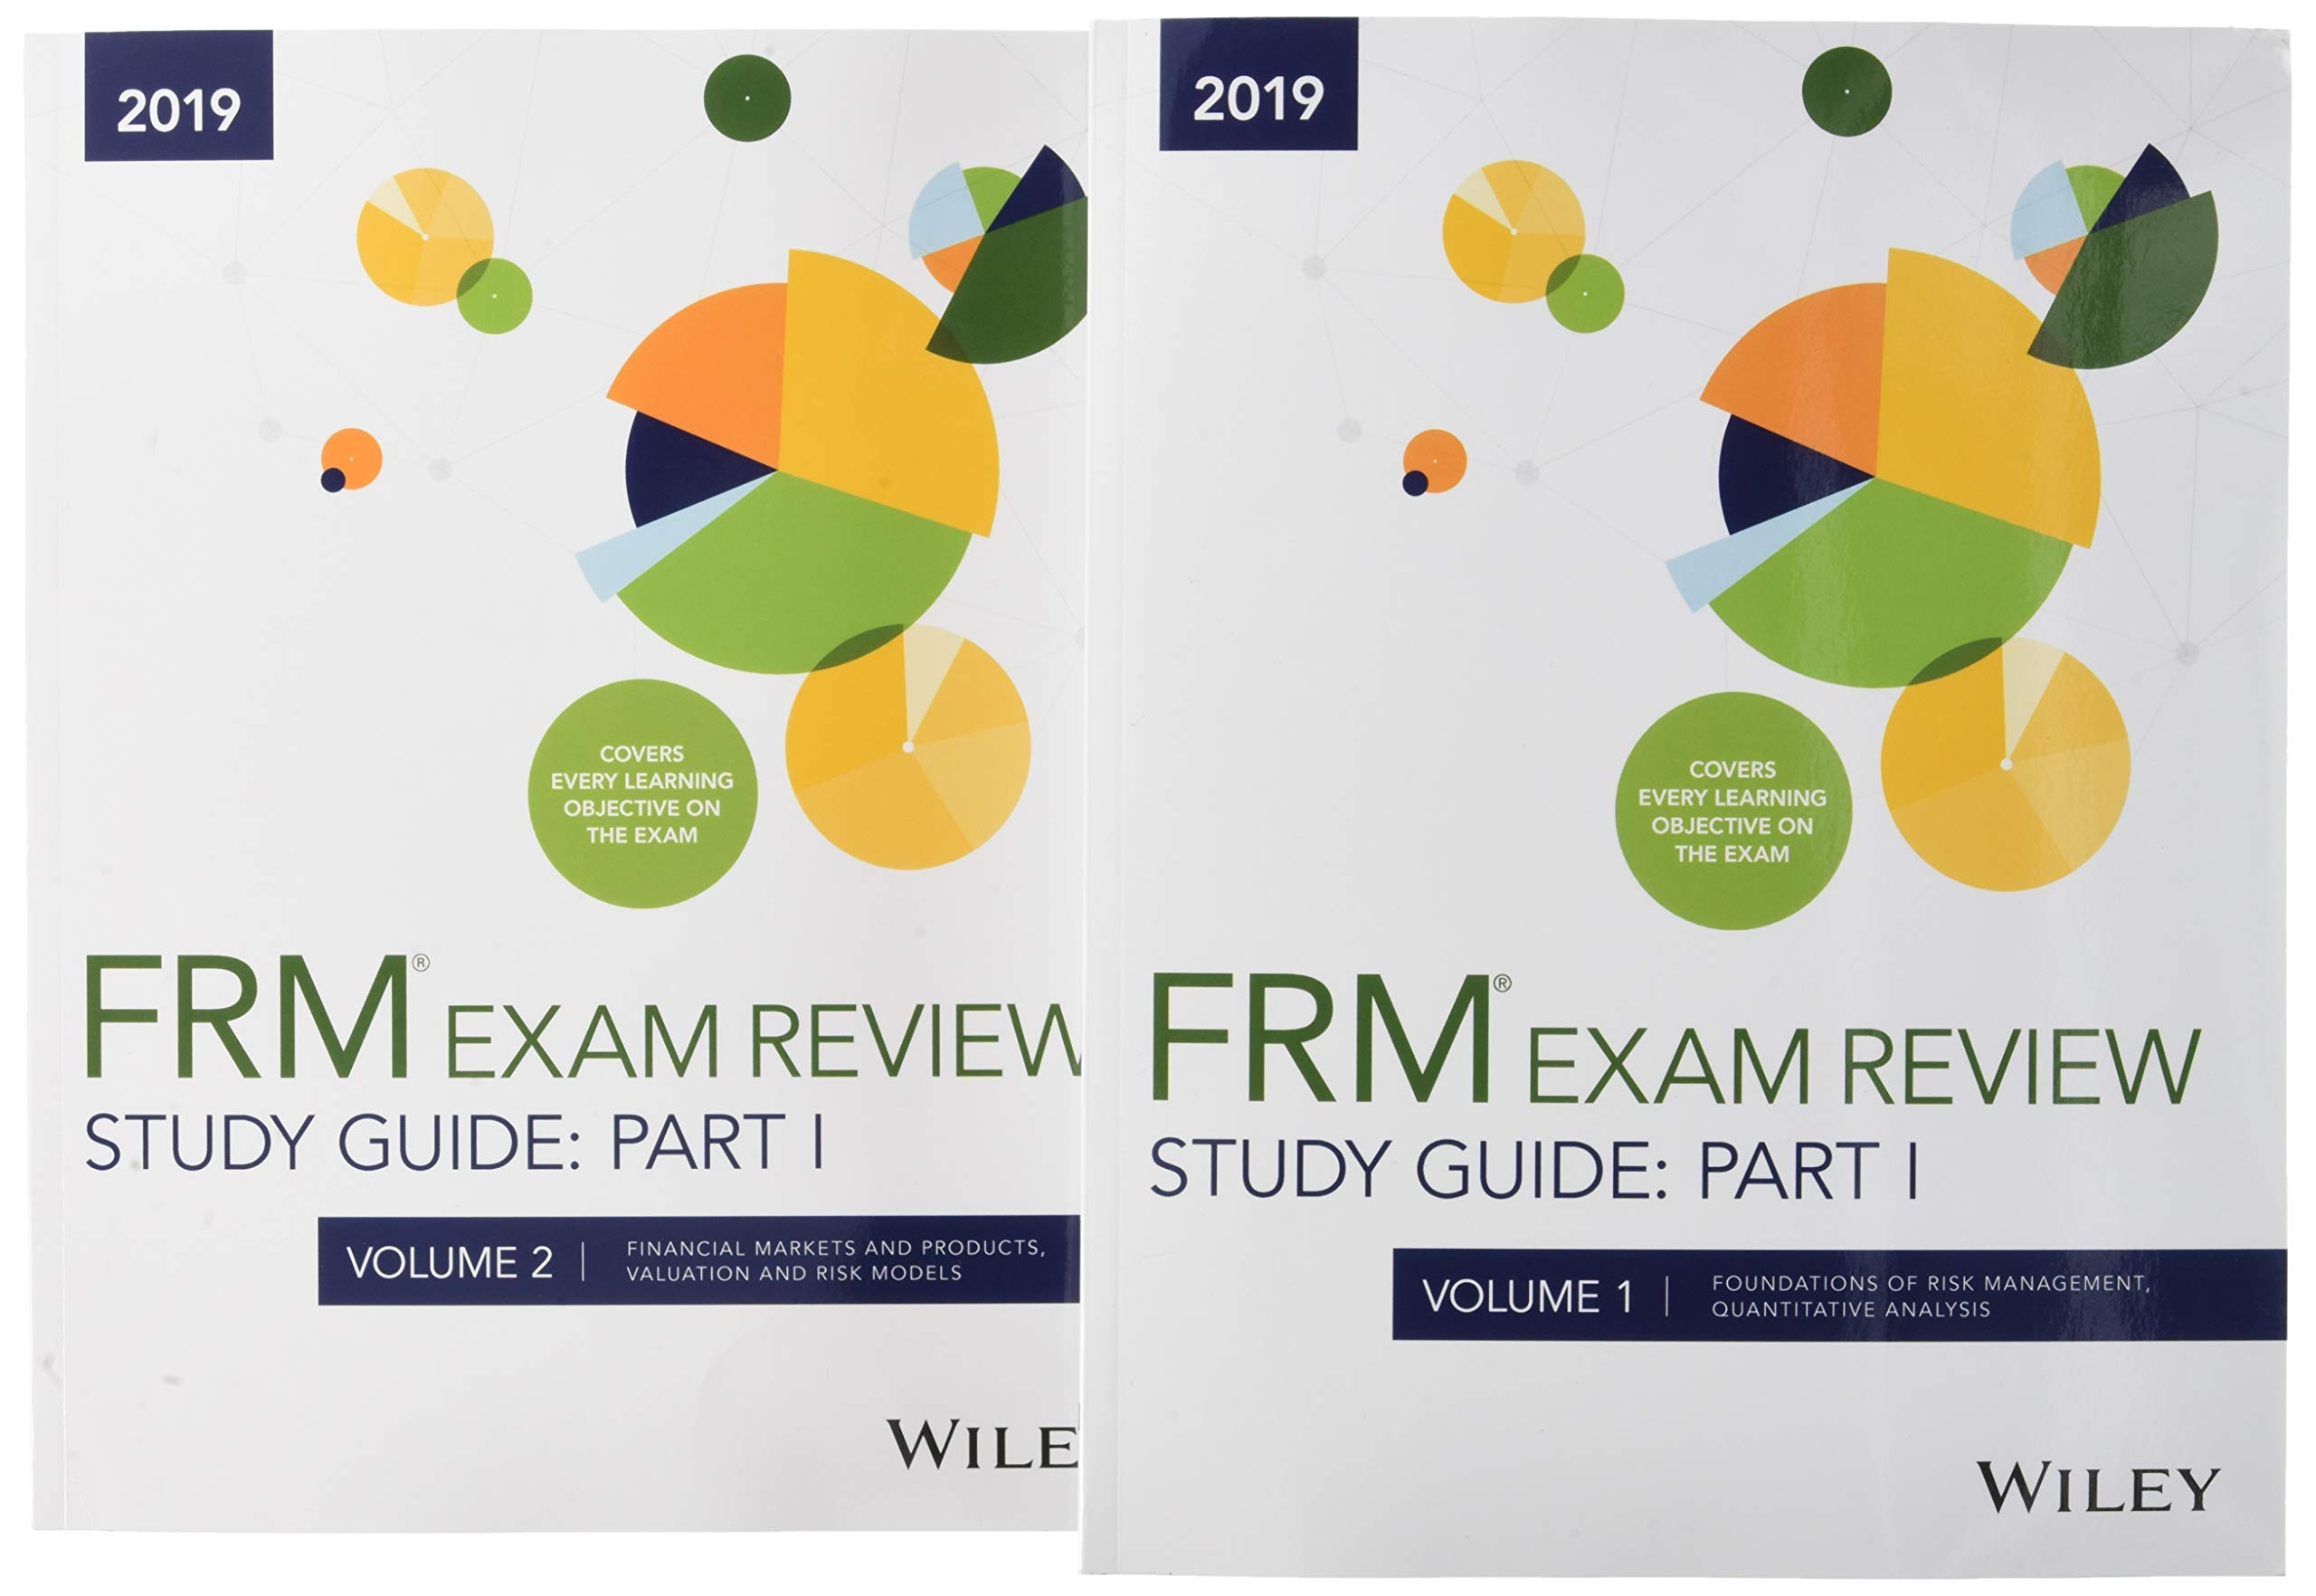 Buy Wiley Study Guide for 2019 Part I FRM Exam: Complete Set Book